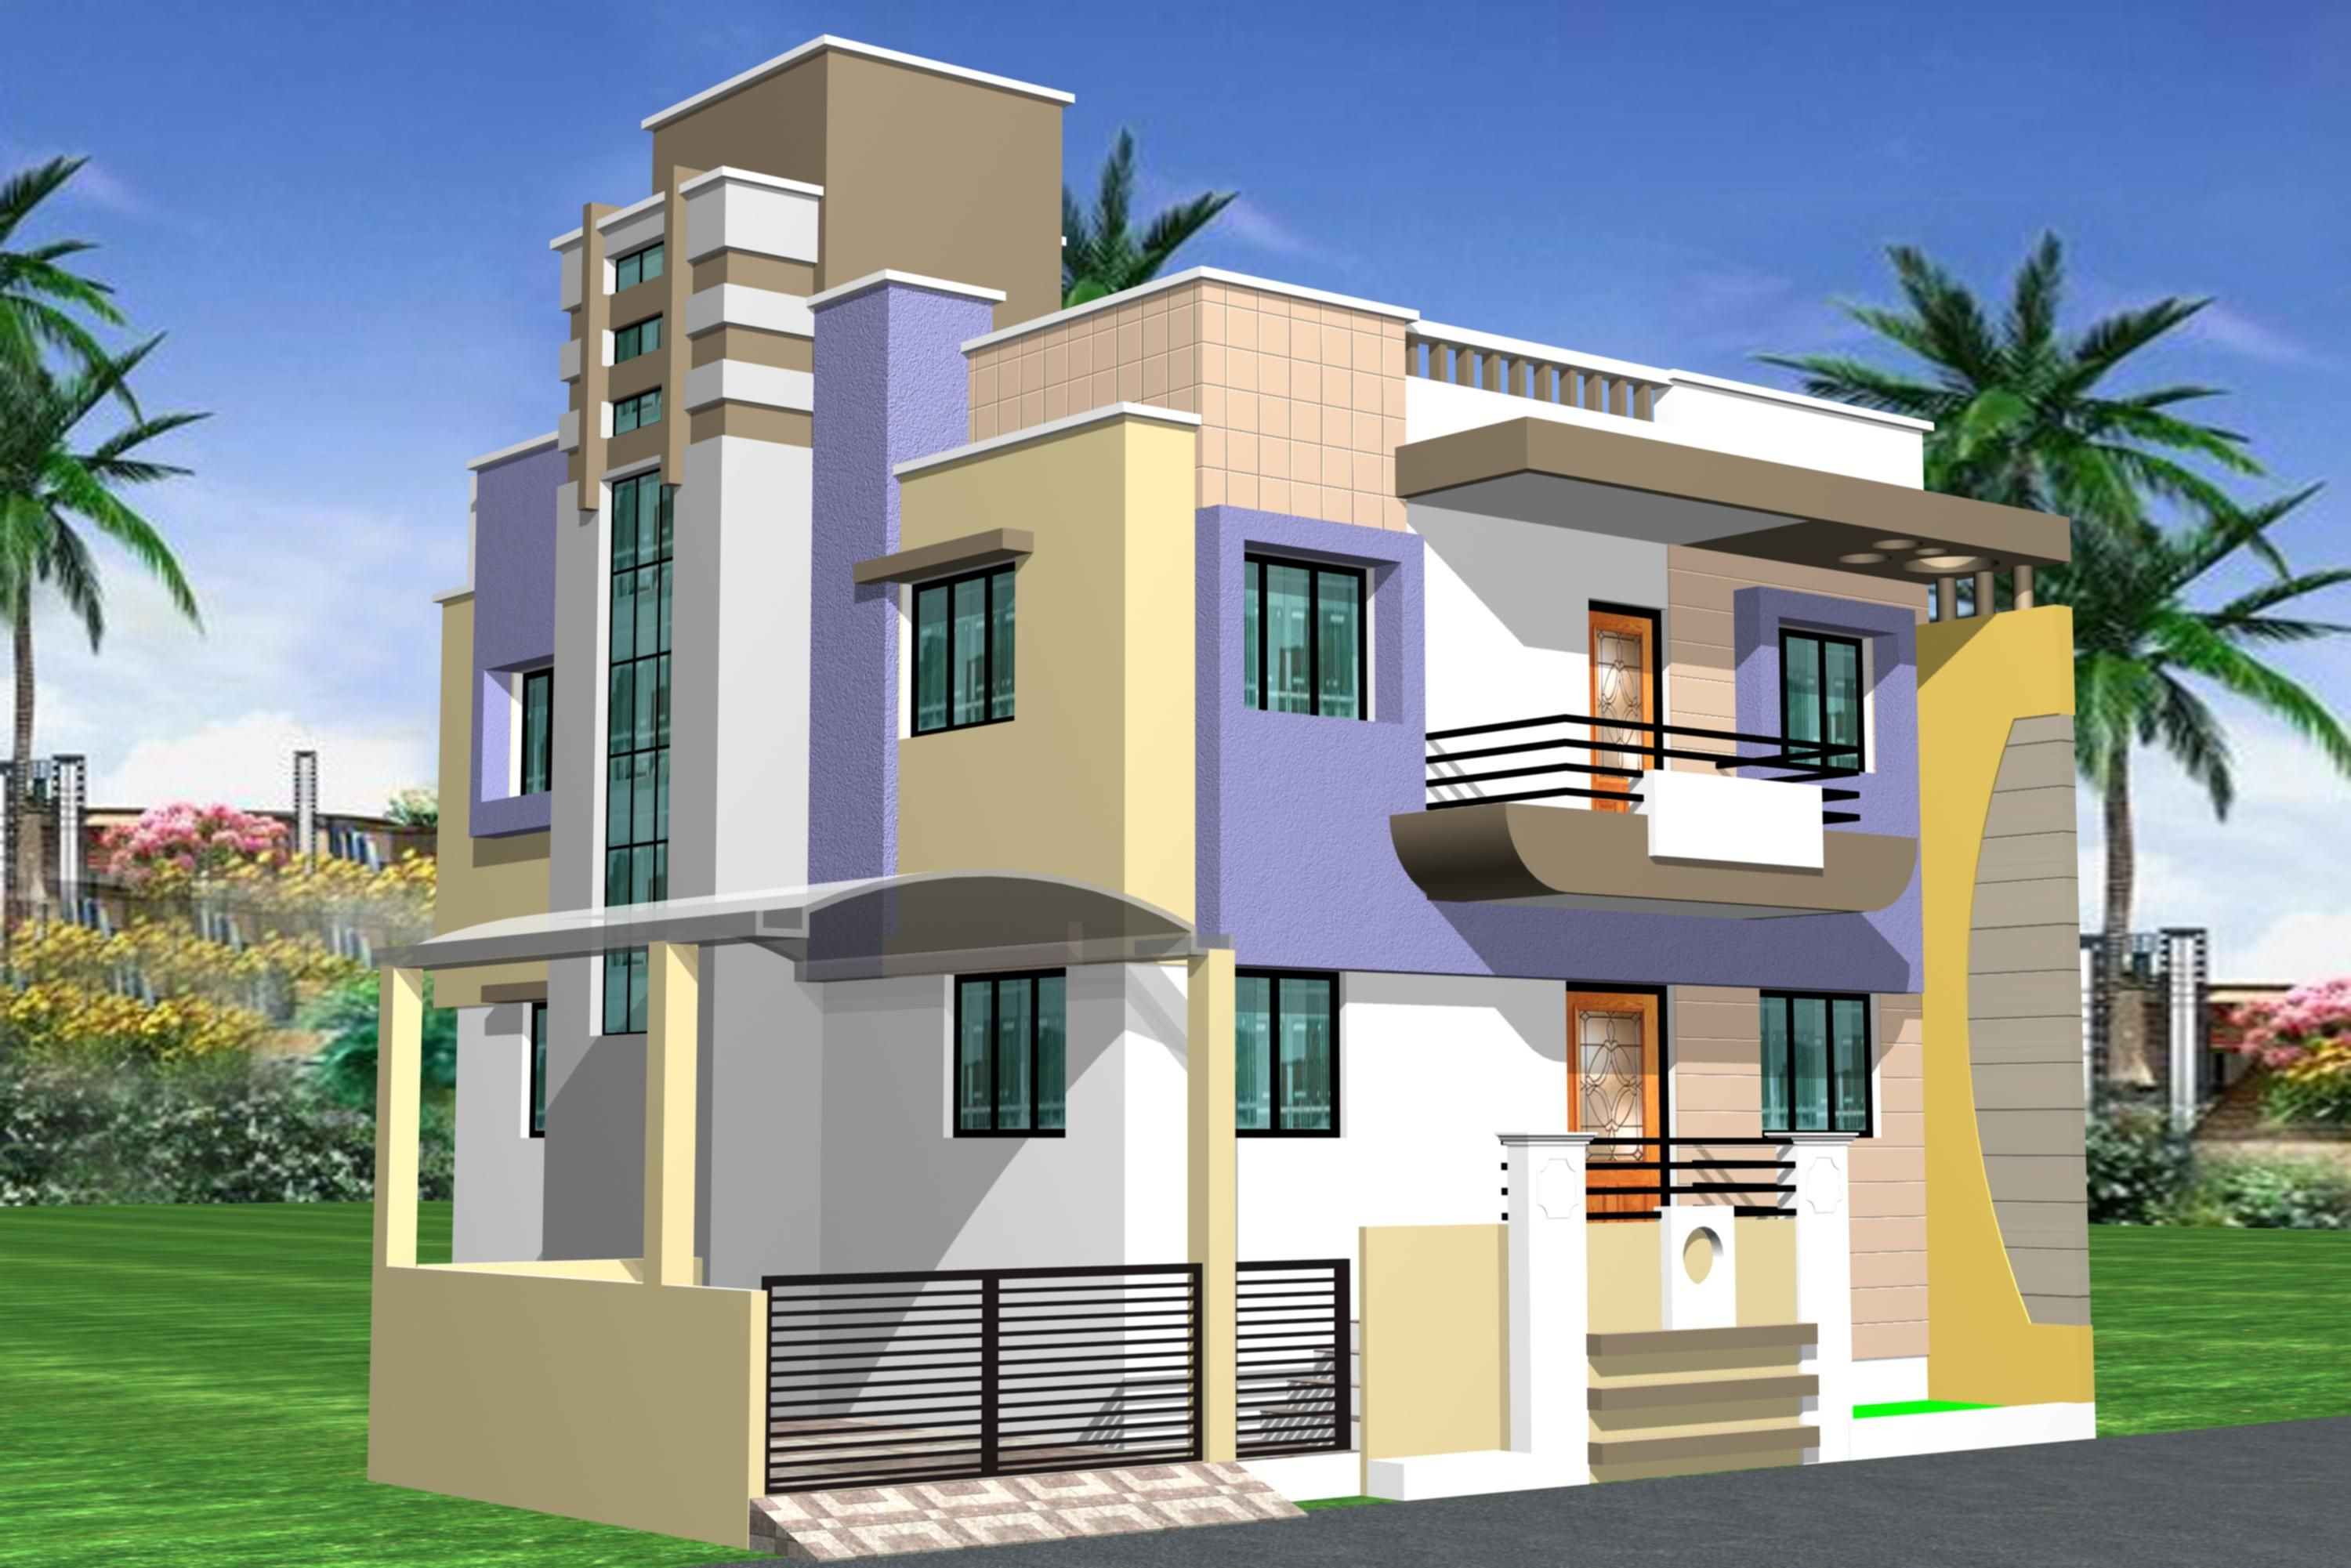 Elegant Simple House Model In Tamilnadu